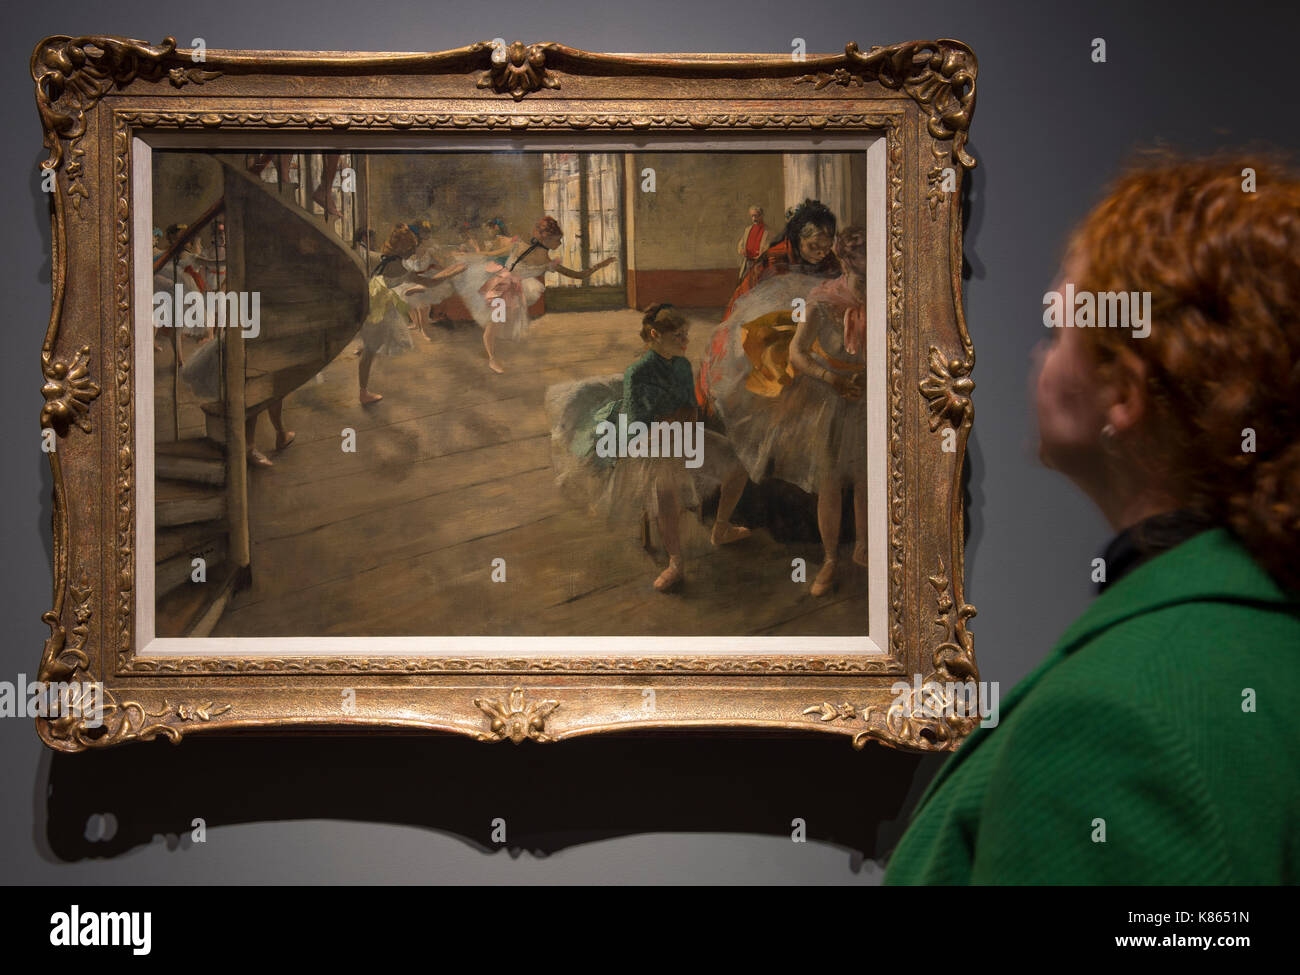 National Gallery, London, UK. 18th Sep, 2017. Degas artworks from the Burrell Collection in Glasgow go on display at the National Gallery from 20 September 2017 - 7 May 2018. Shipping magnate Sir William Burrell gifted his large collection of art, including one of the finest collections of Degas pastels in the world, to the City of Glasgow in 1944. Photograph: A member of gallery staff views The Rehearsal, about 1874. The Burrell Collection, Glasgow. Glasgow Museums Collection. Credit: Malcolm Park/Alamy Live News. - Stock Image